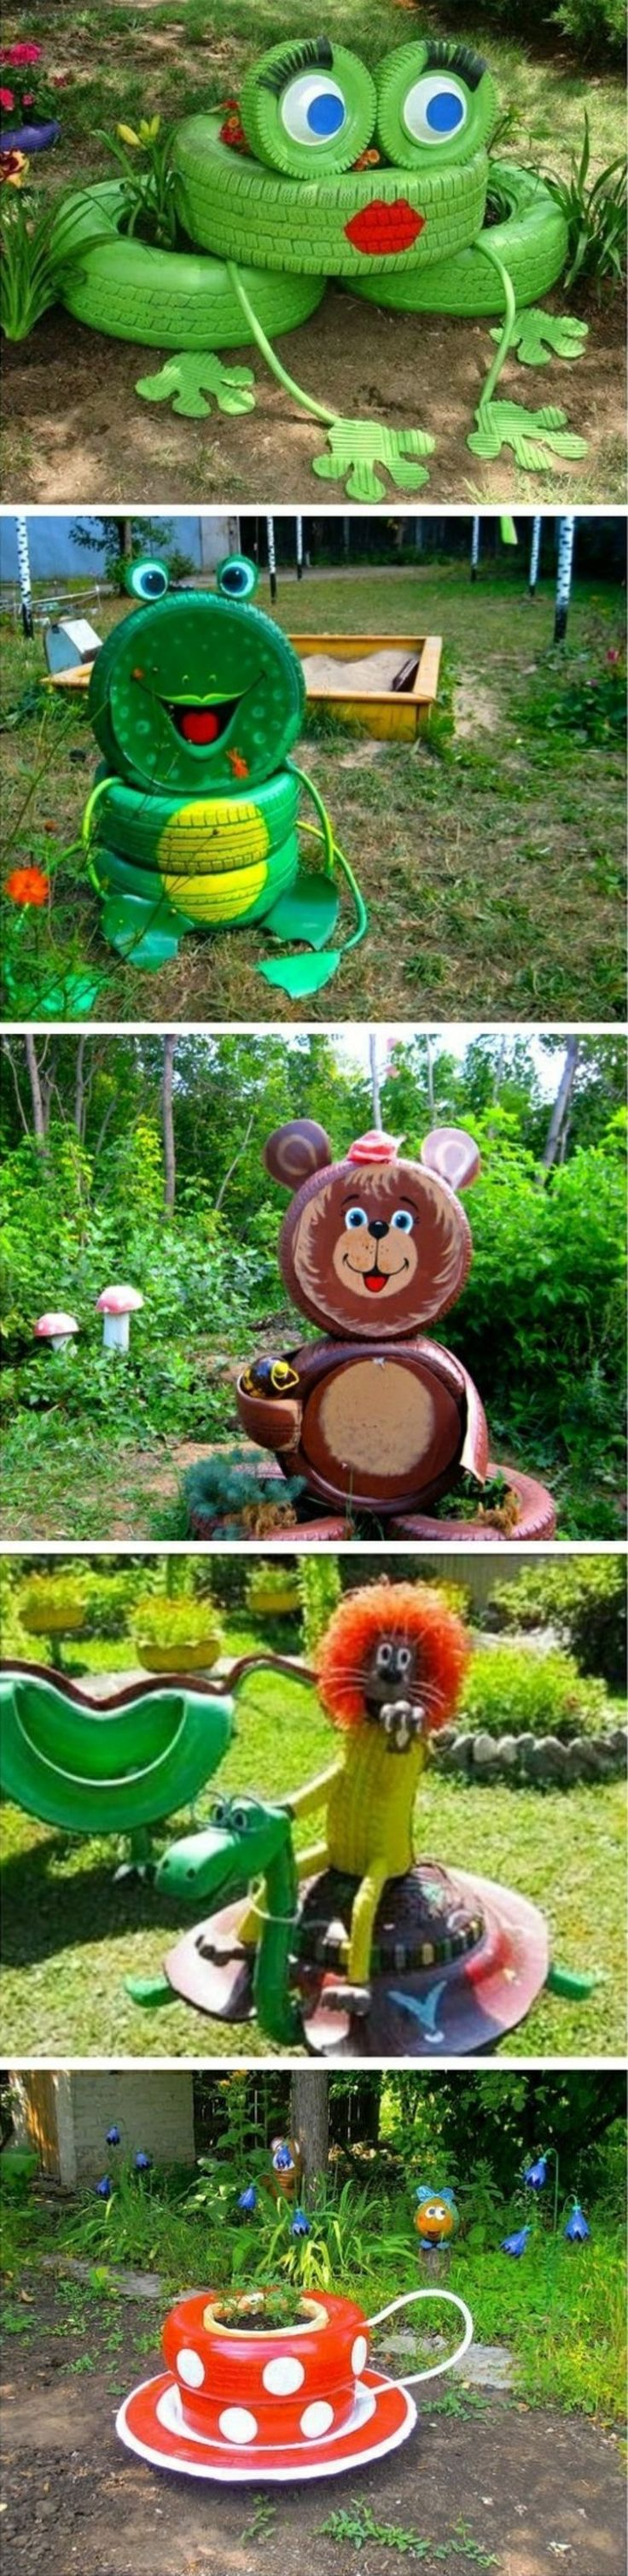 Do it yourself garden art super cute garden crafts for kids do it find this pin and more on do it yourself ideas with old tires u examples solutioingenieria Gallery